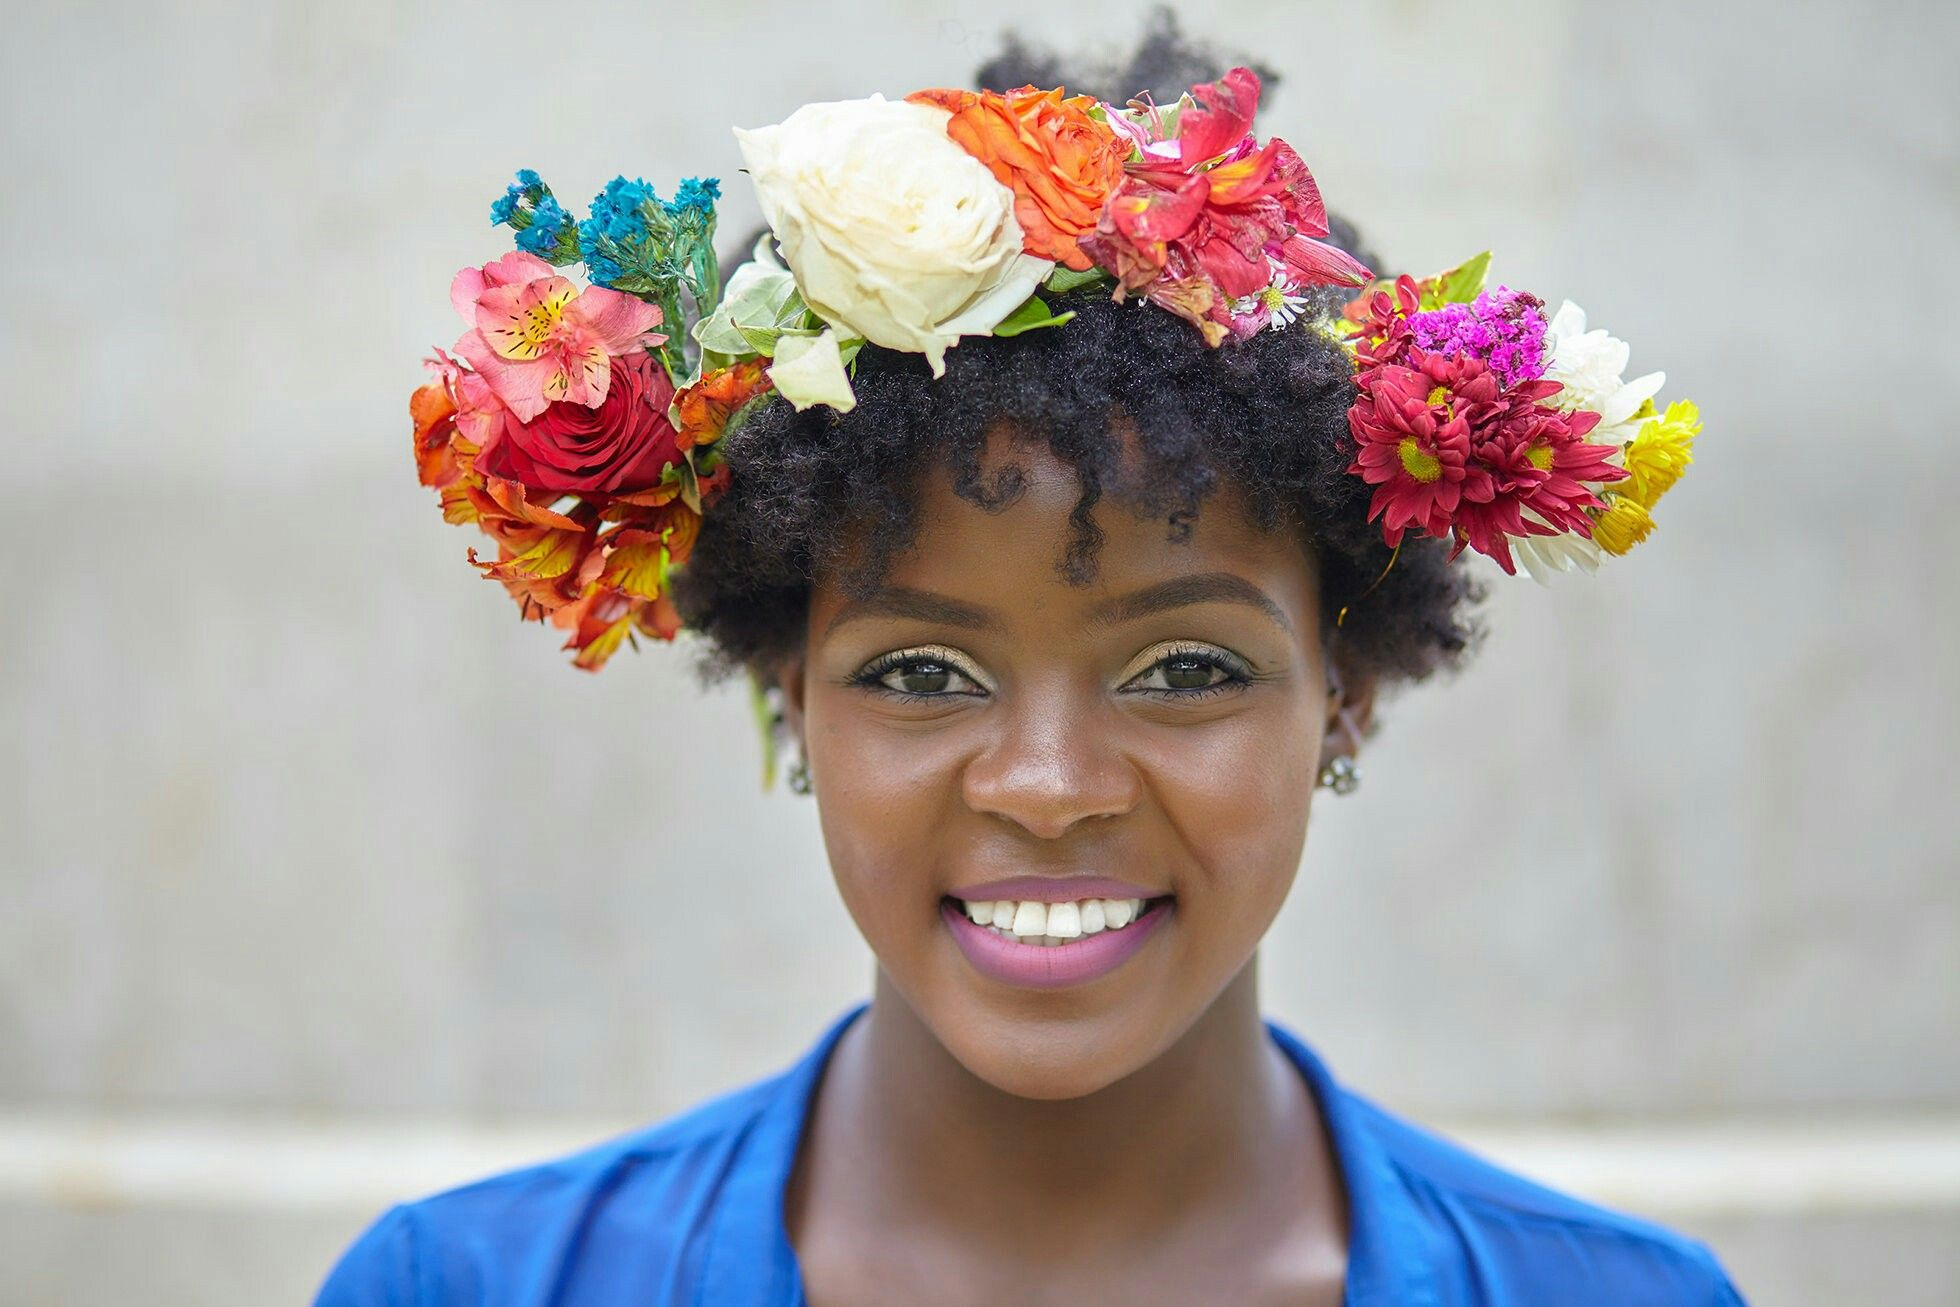 Pin by titi a on bohemian bride pinterest how to accessorize your natural hair using a flower crown made using fresh flowers jazz up your teeny weeny afro for a festival using flower crowns izmirmasajfo